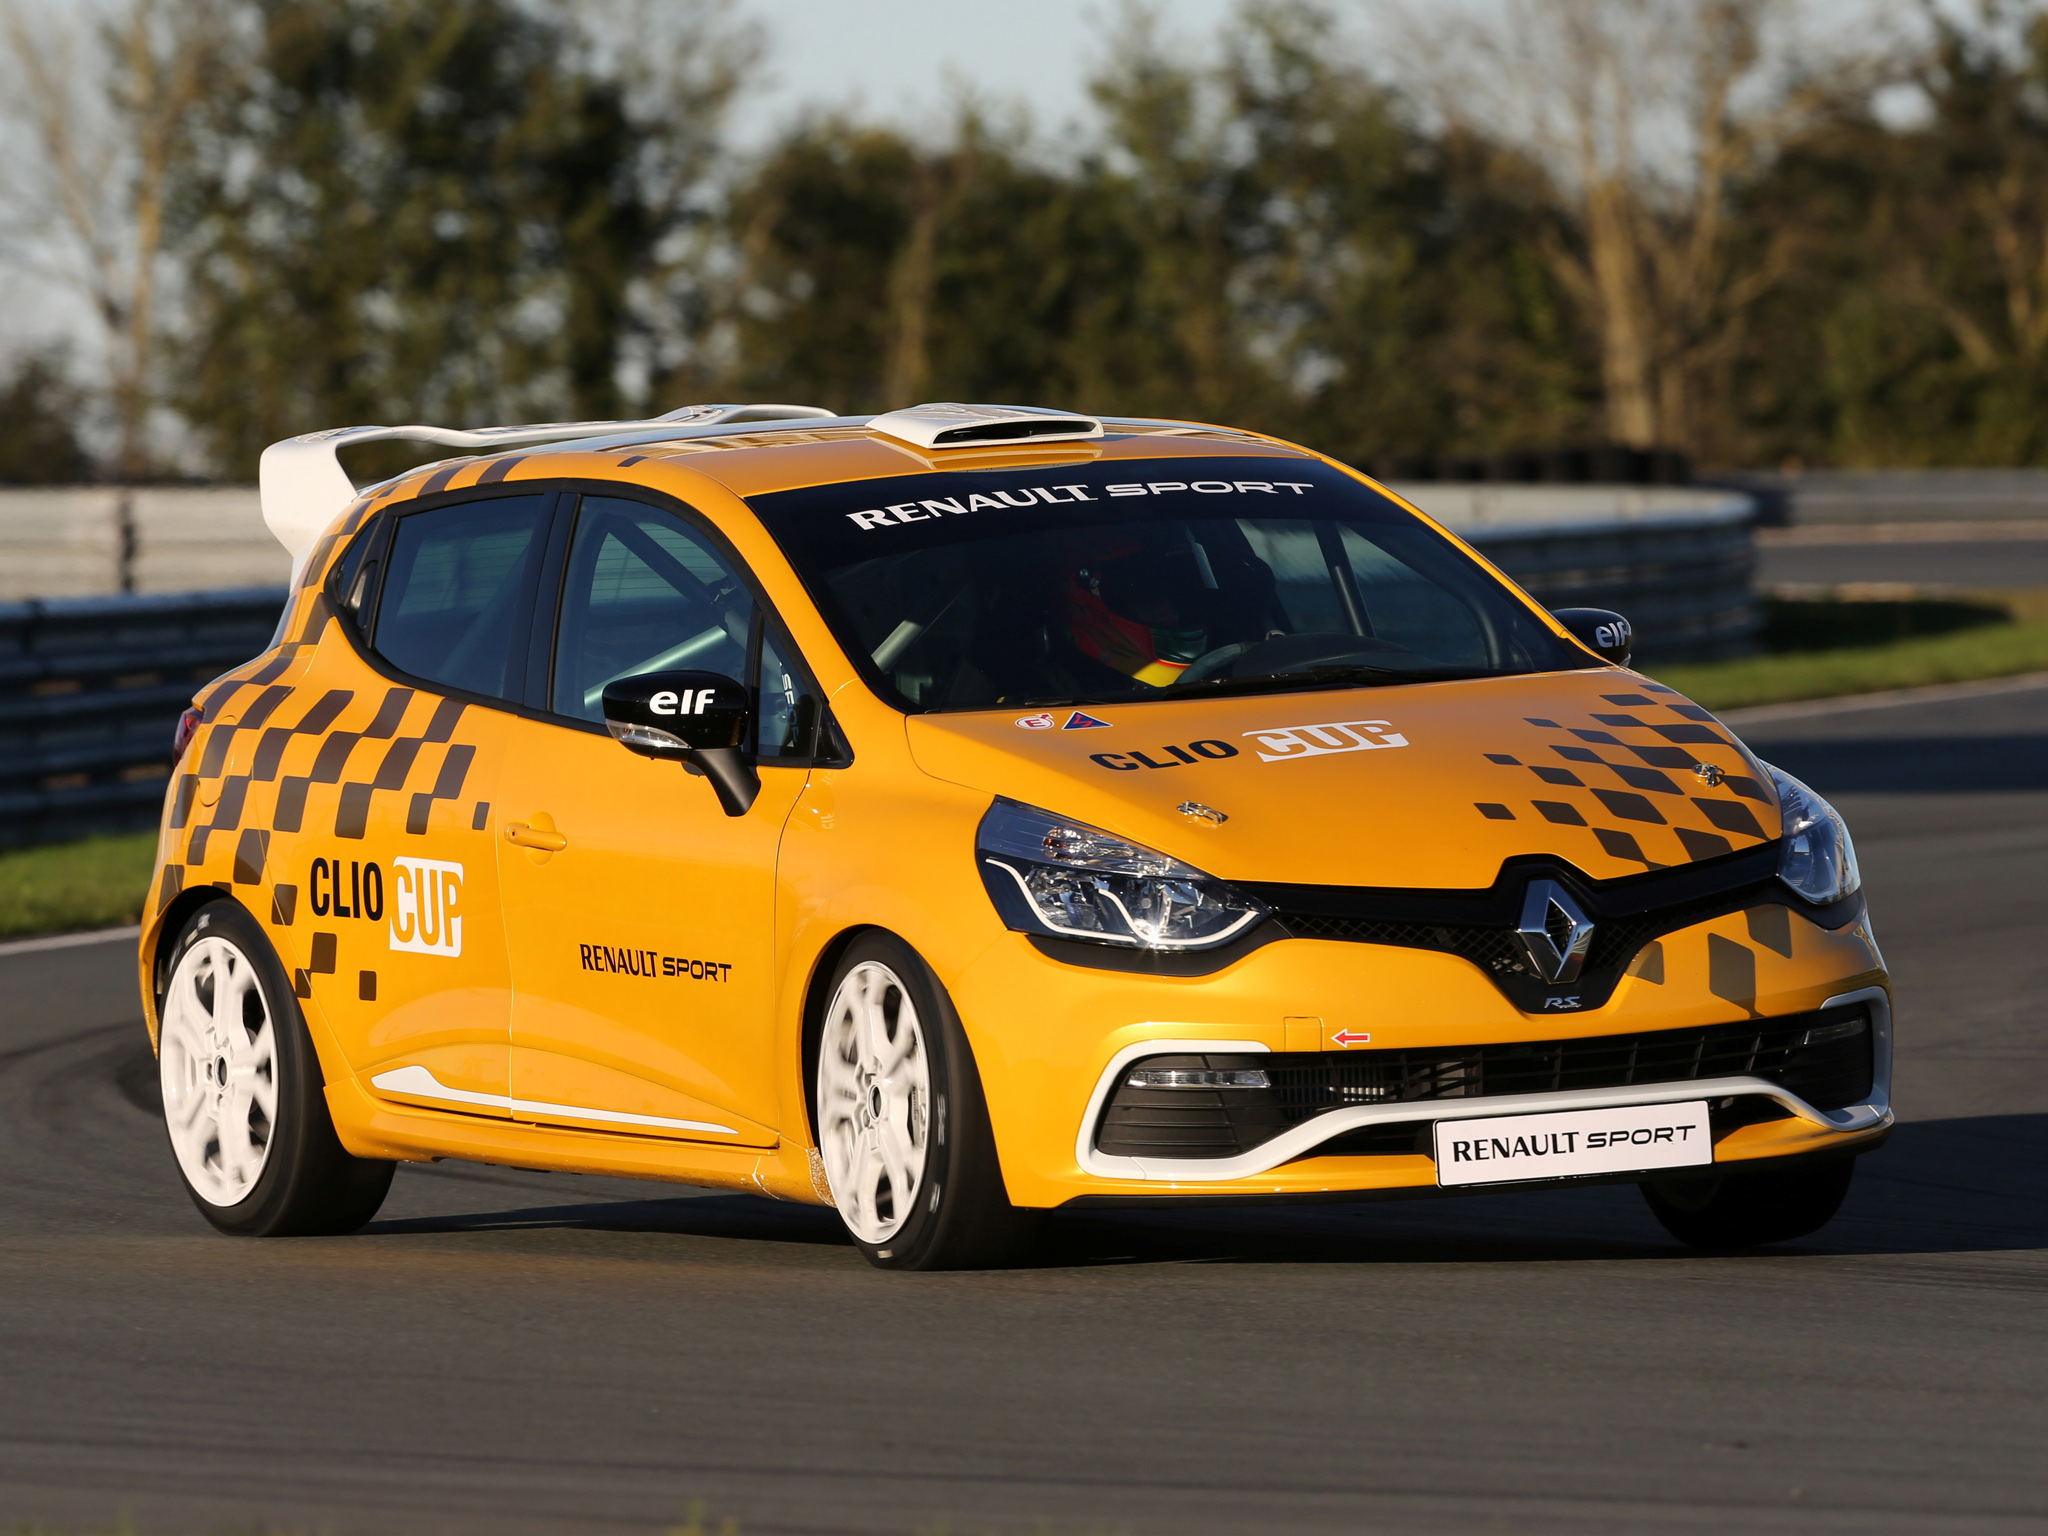 2013 renault clio r s cup tuning race racing wallpaper 2048x1536 123767 wallpaperup. Black Bedroom Furniture Sets. Home Design Ideas